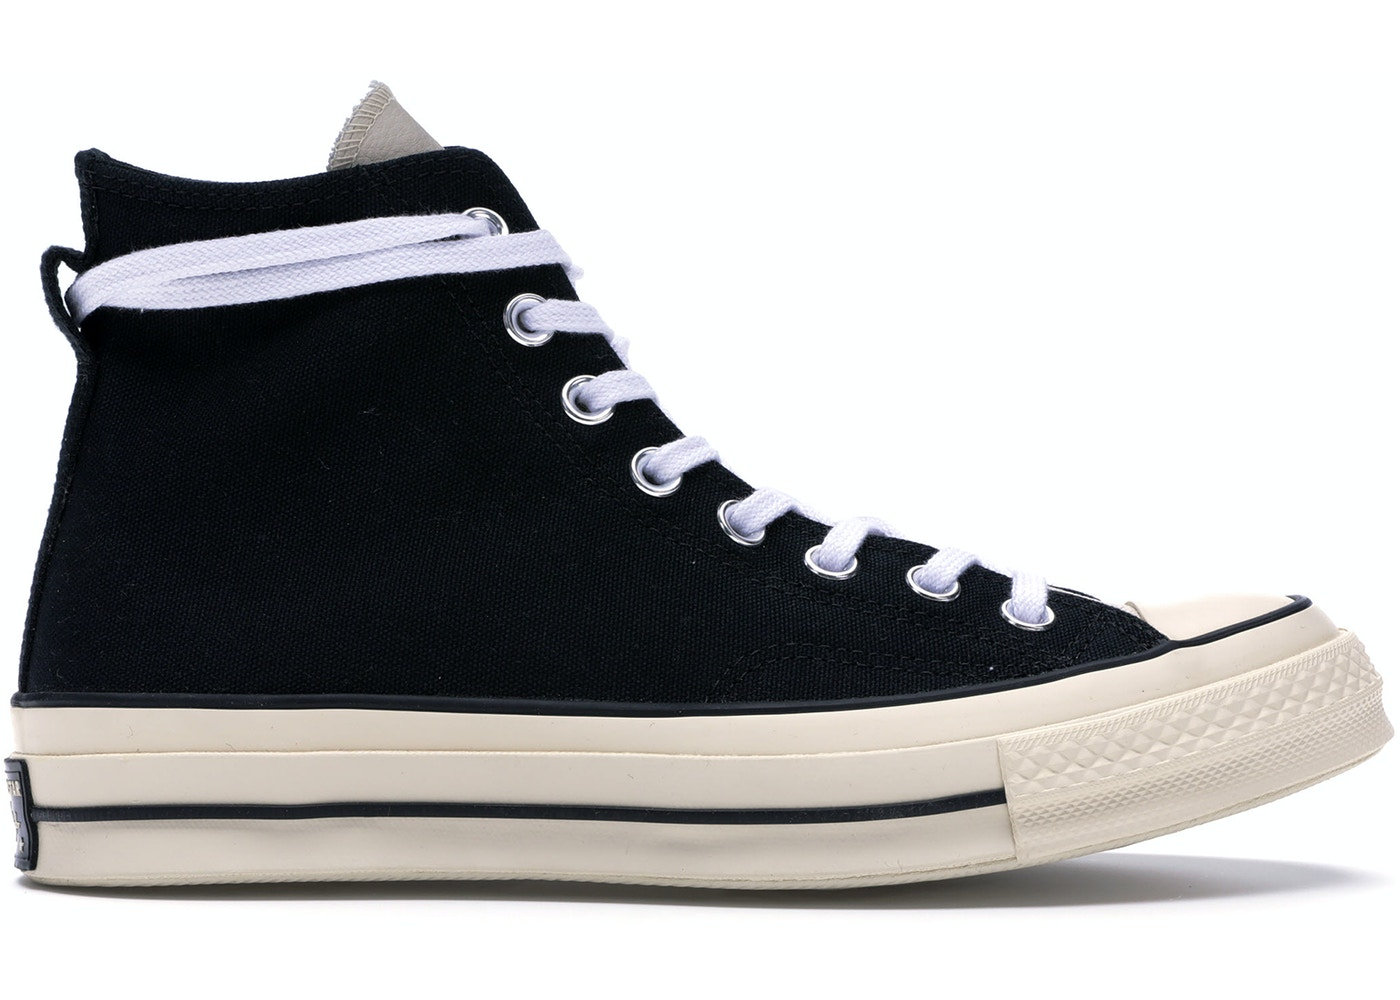 3f454cb68833 Converse Chuck Taylor All-Star 70s Hi Fear of God Black - 164529C